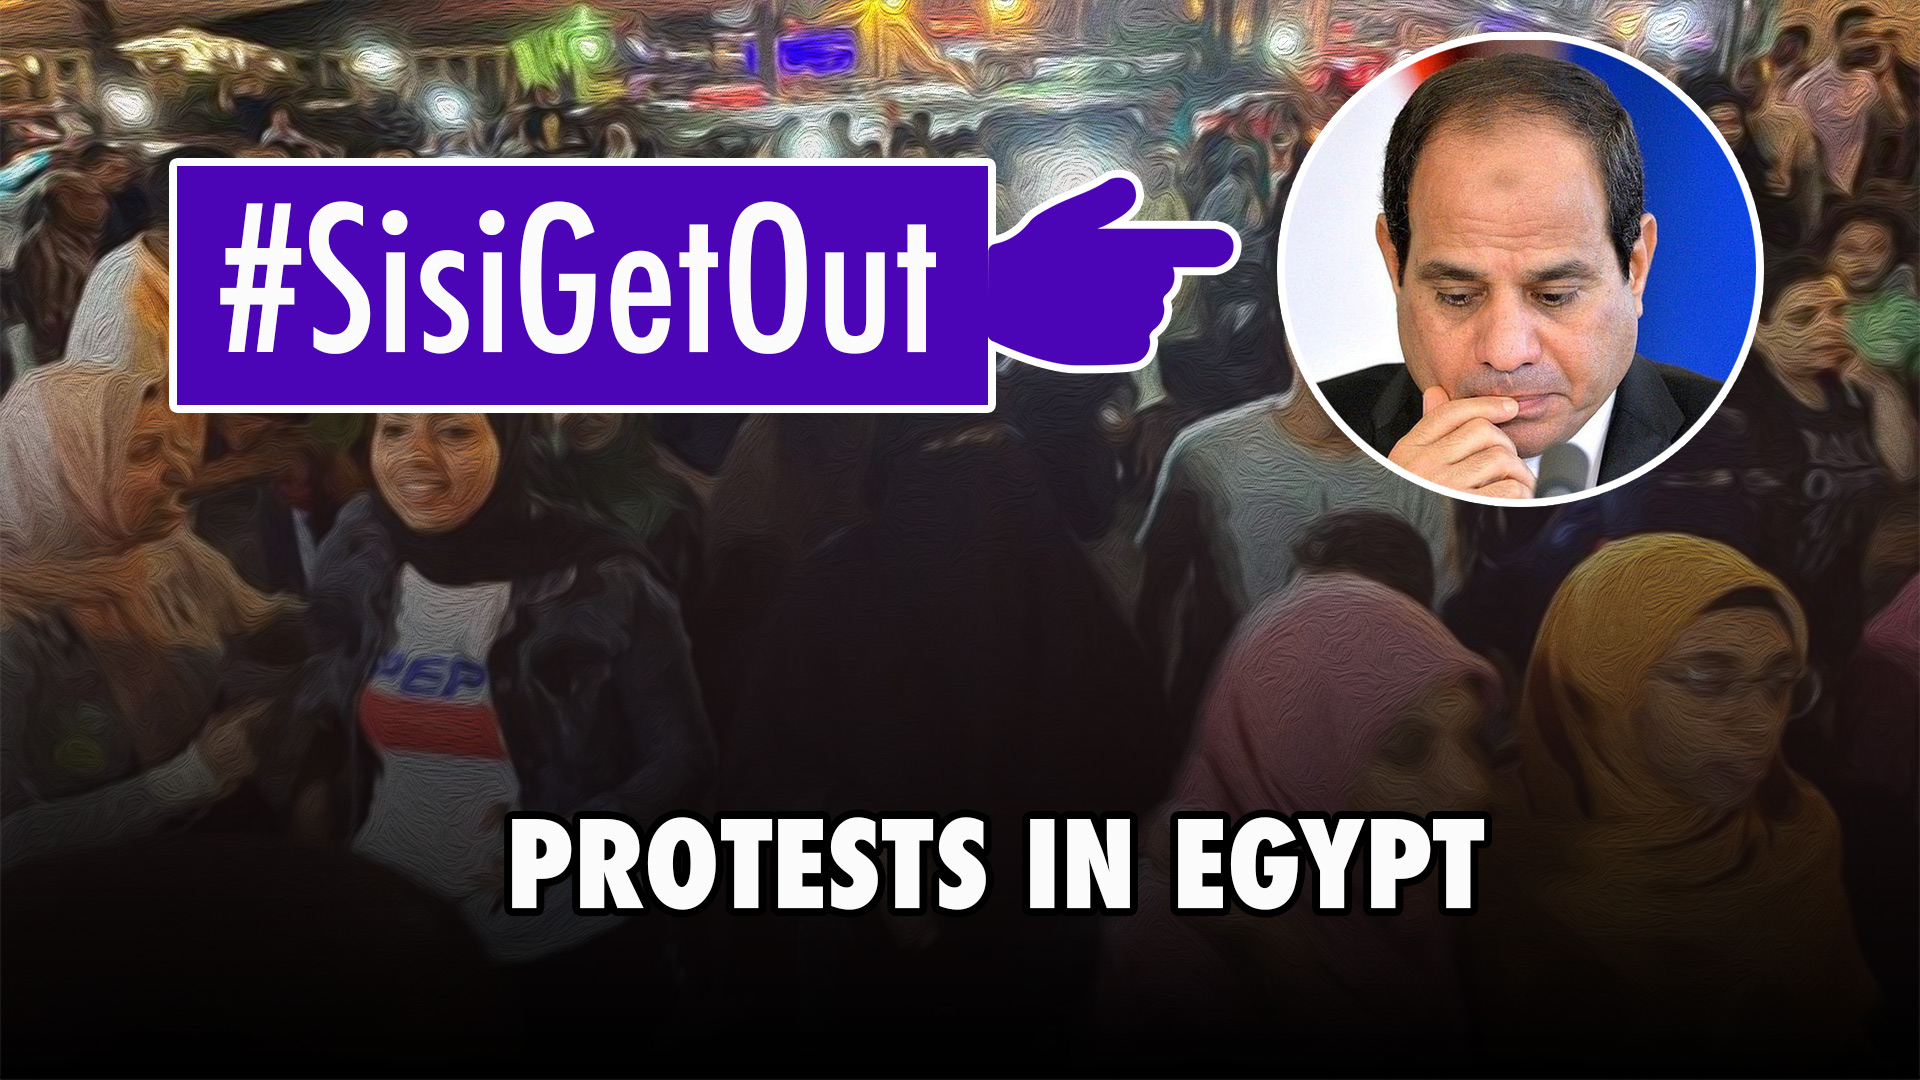 Sisi Get Out_Protests in Egypt